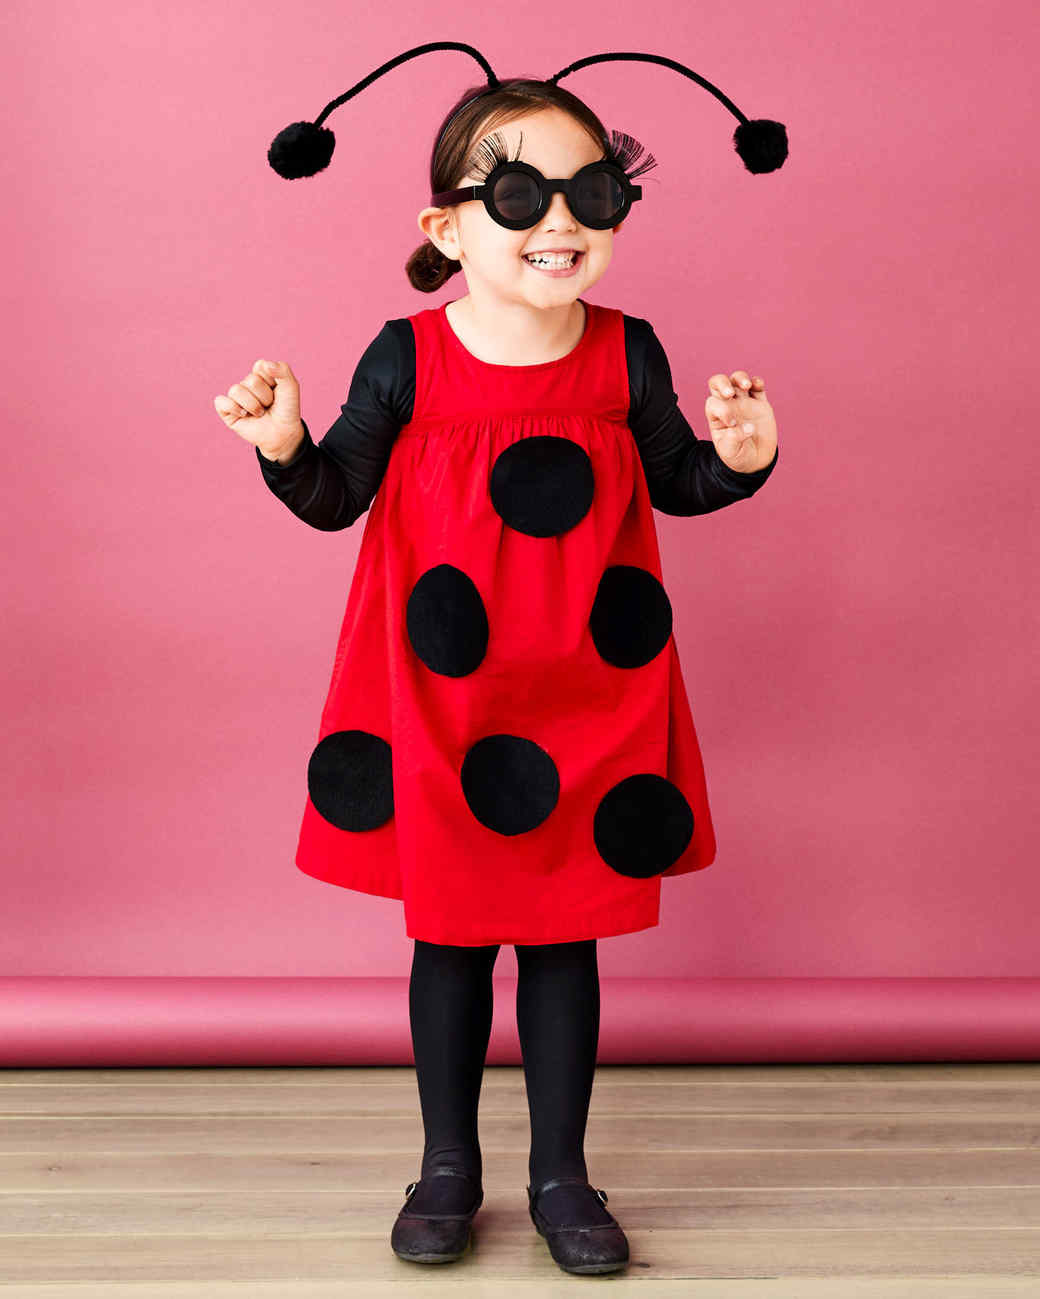 Brand New Insect Lady Bug Stockings Costume Accessory Adult